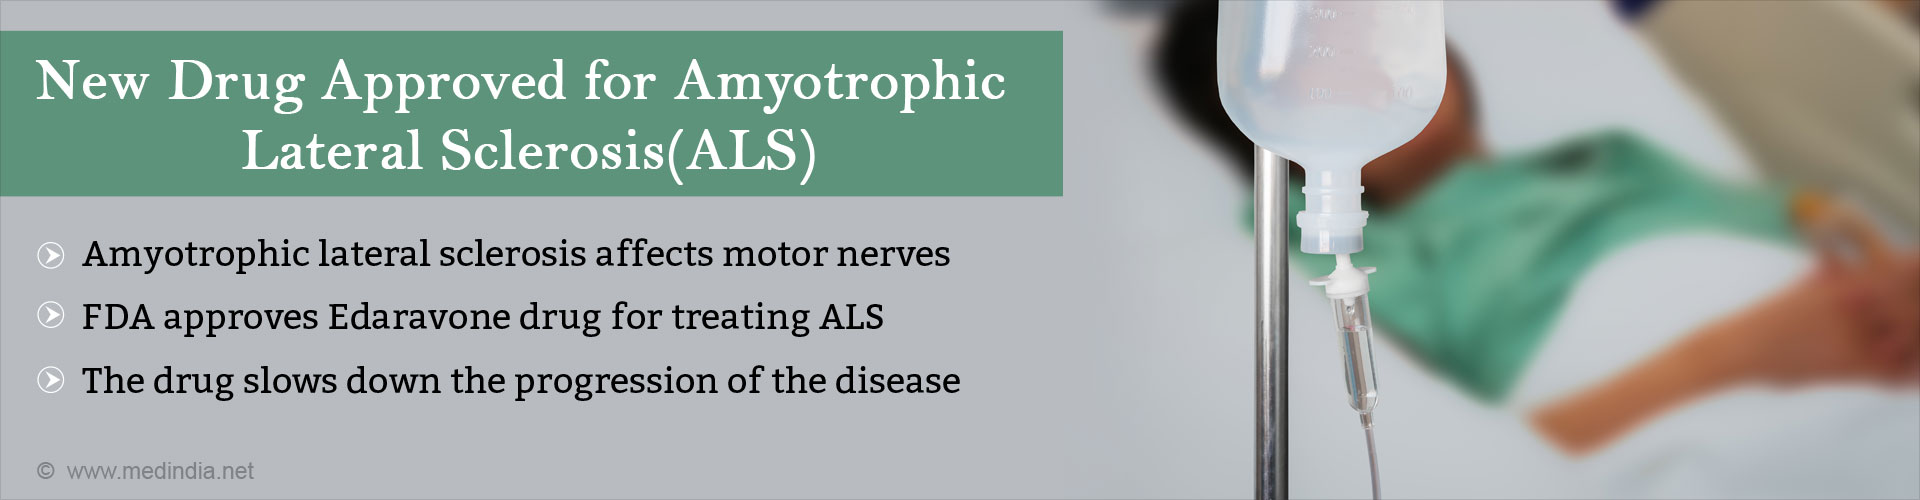 FDA Approves Edaravone Drug for Amyotrophic Lateral Sclerosis